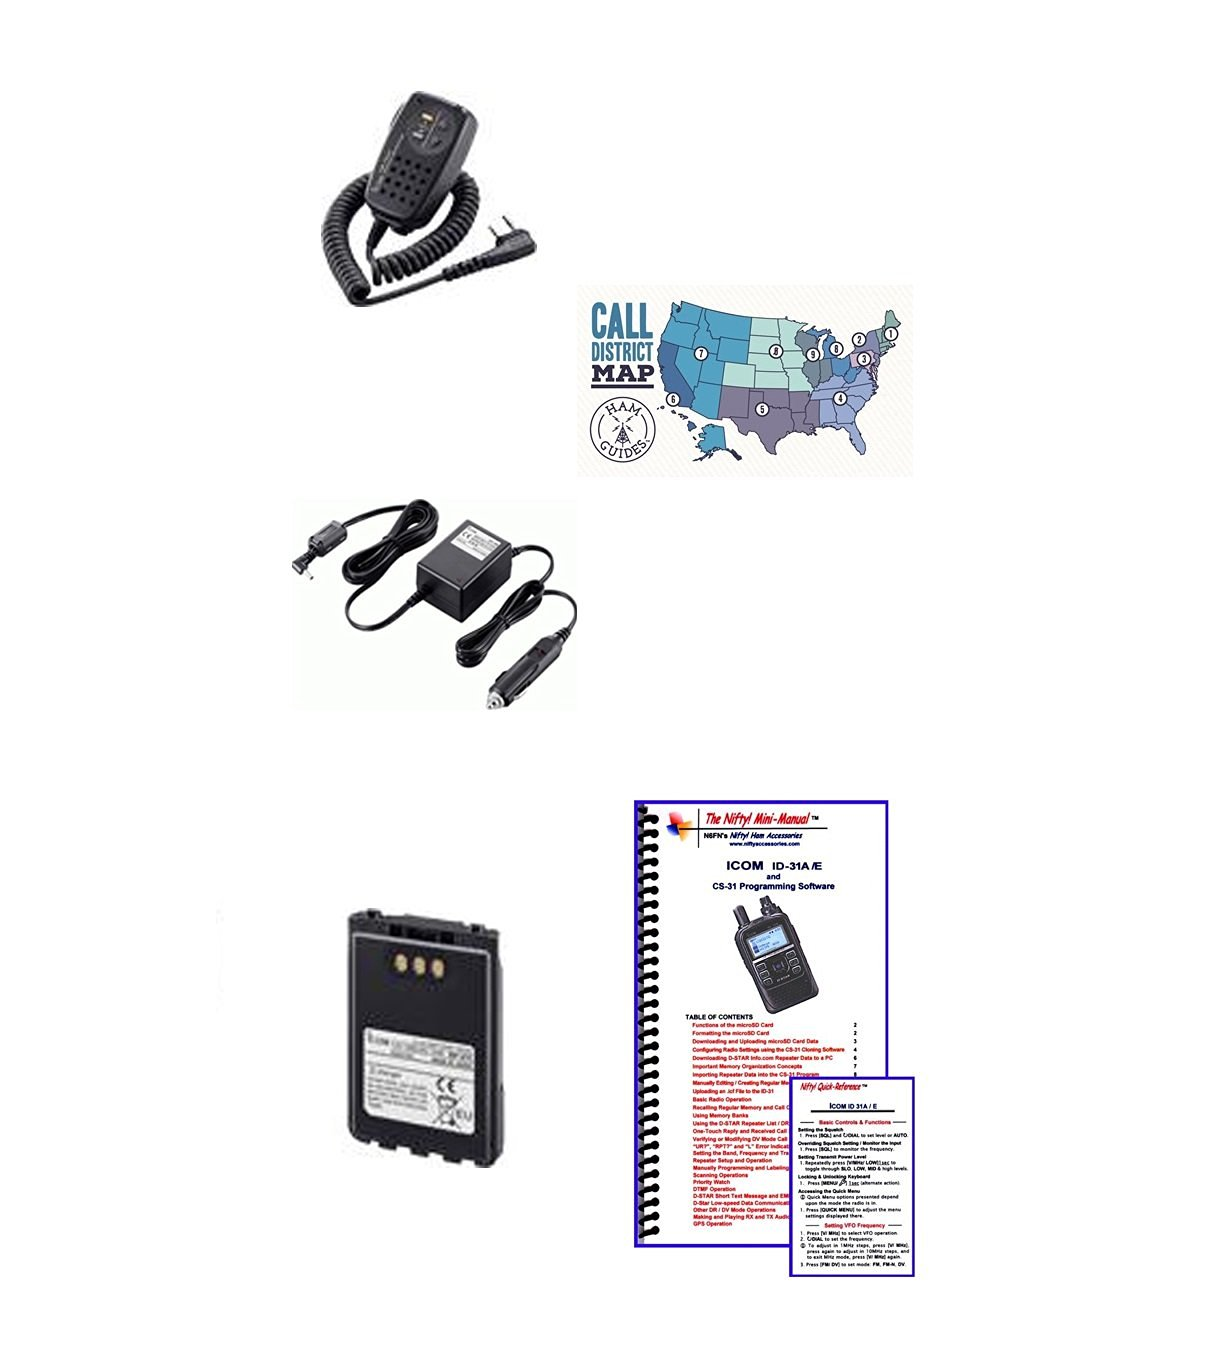 Cheap Icom Manual, find Icom Manual deals on line at Alibaba com